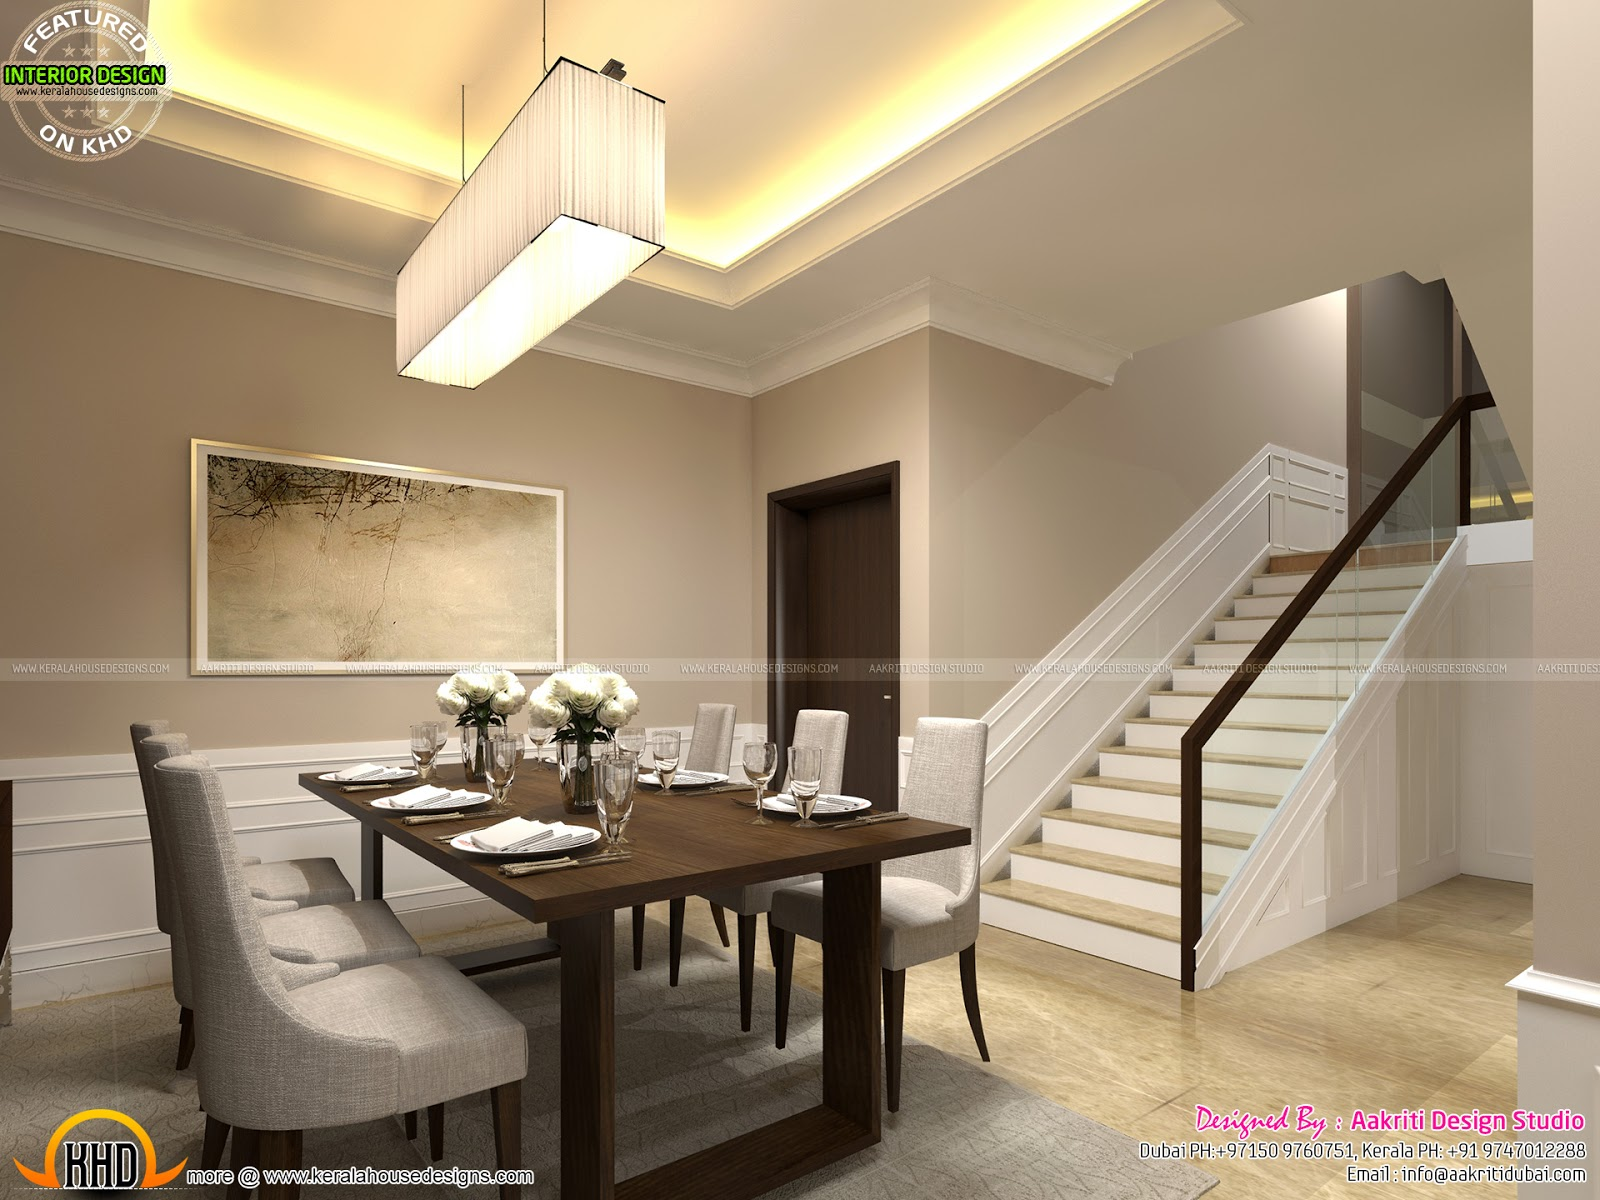 Classic Style Interior Design For Living Room Stair Area: house model interior design